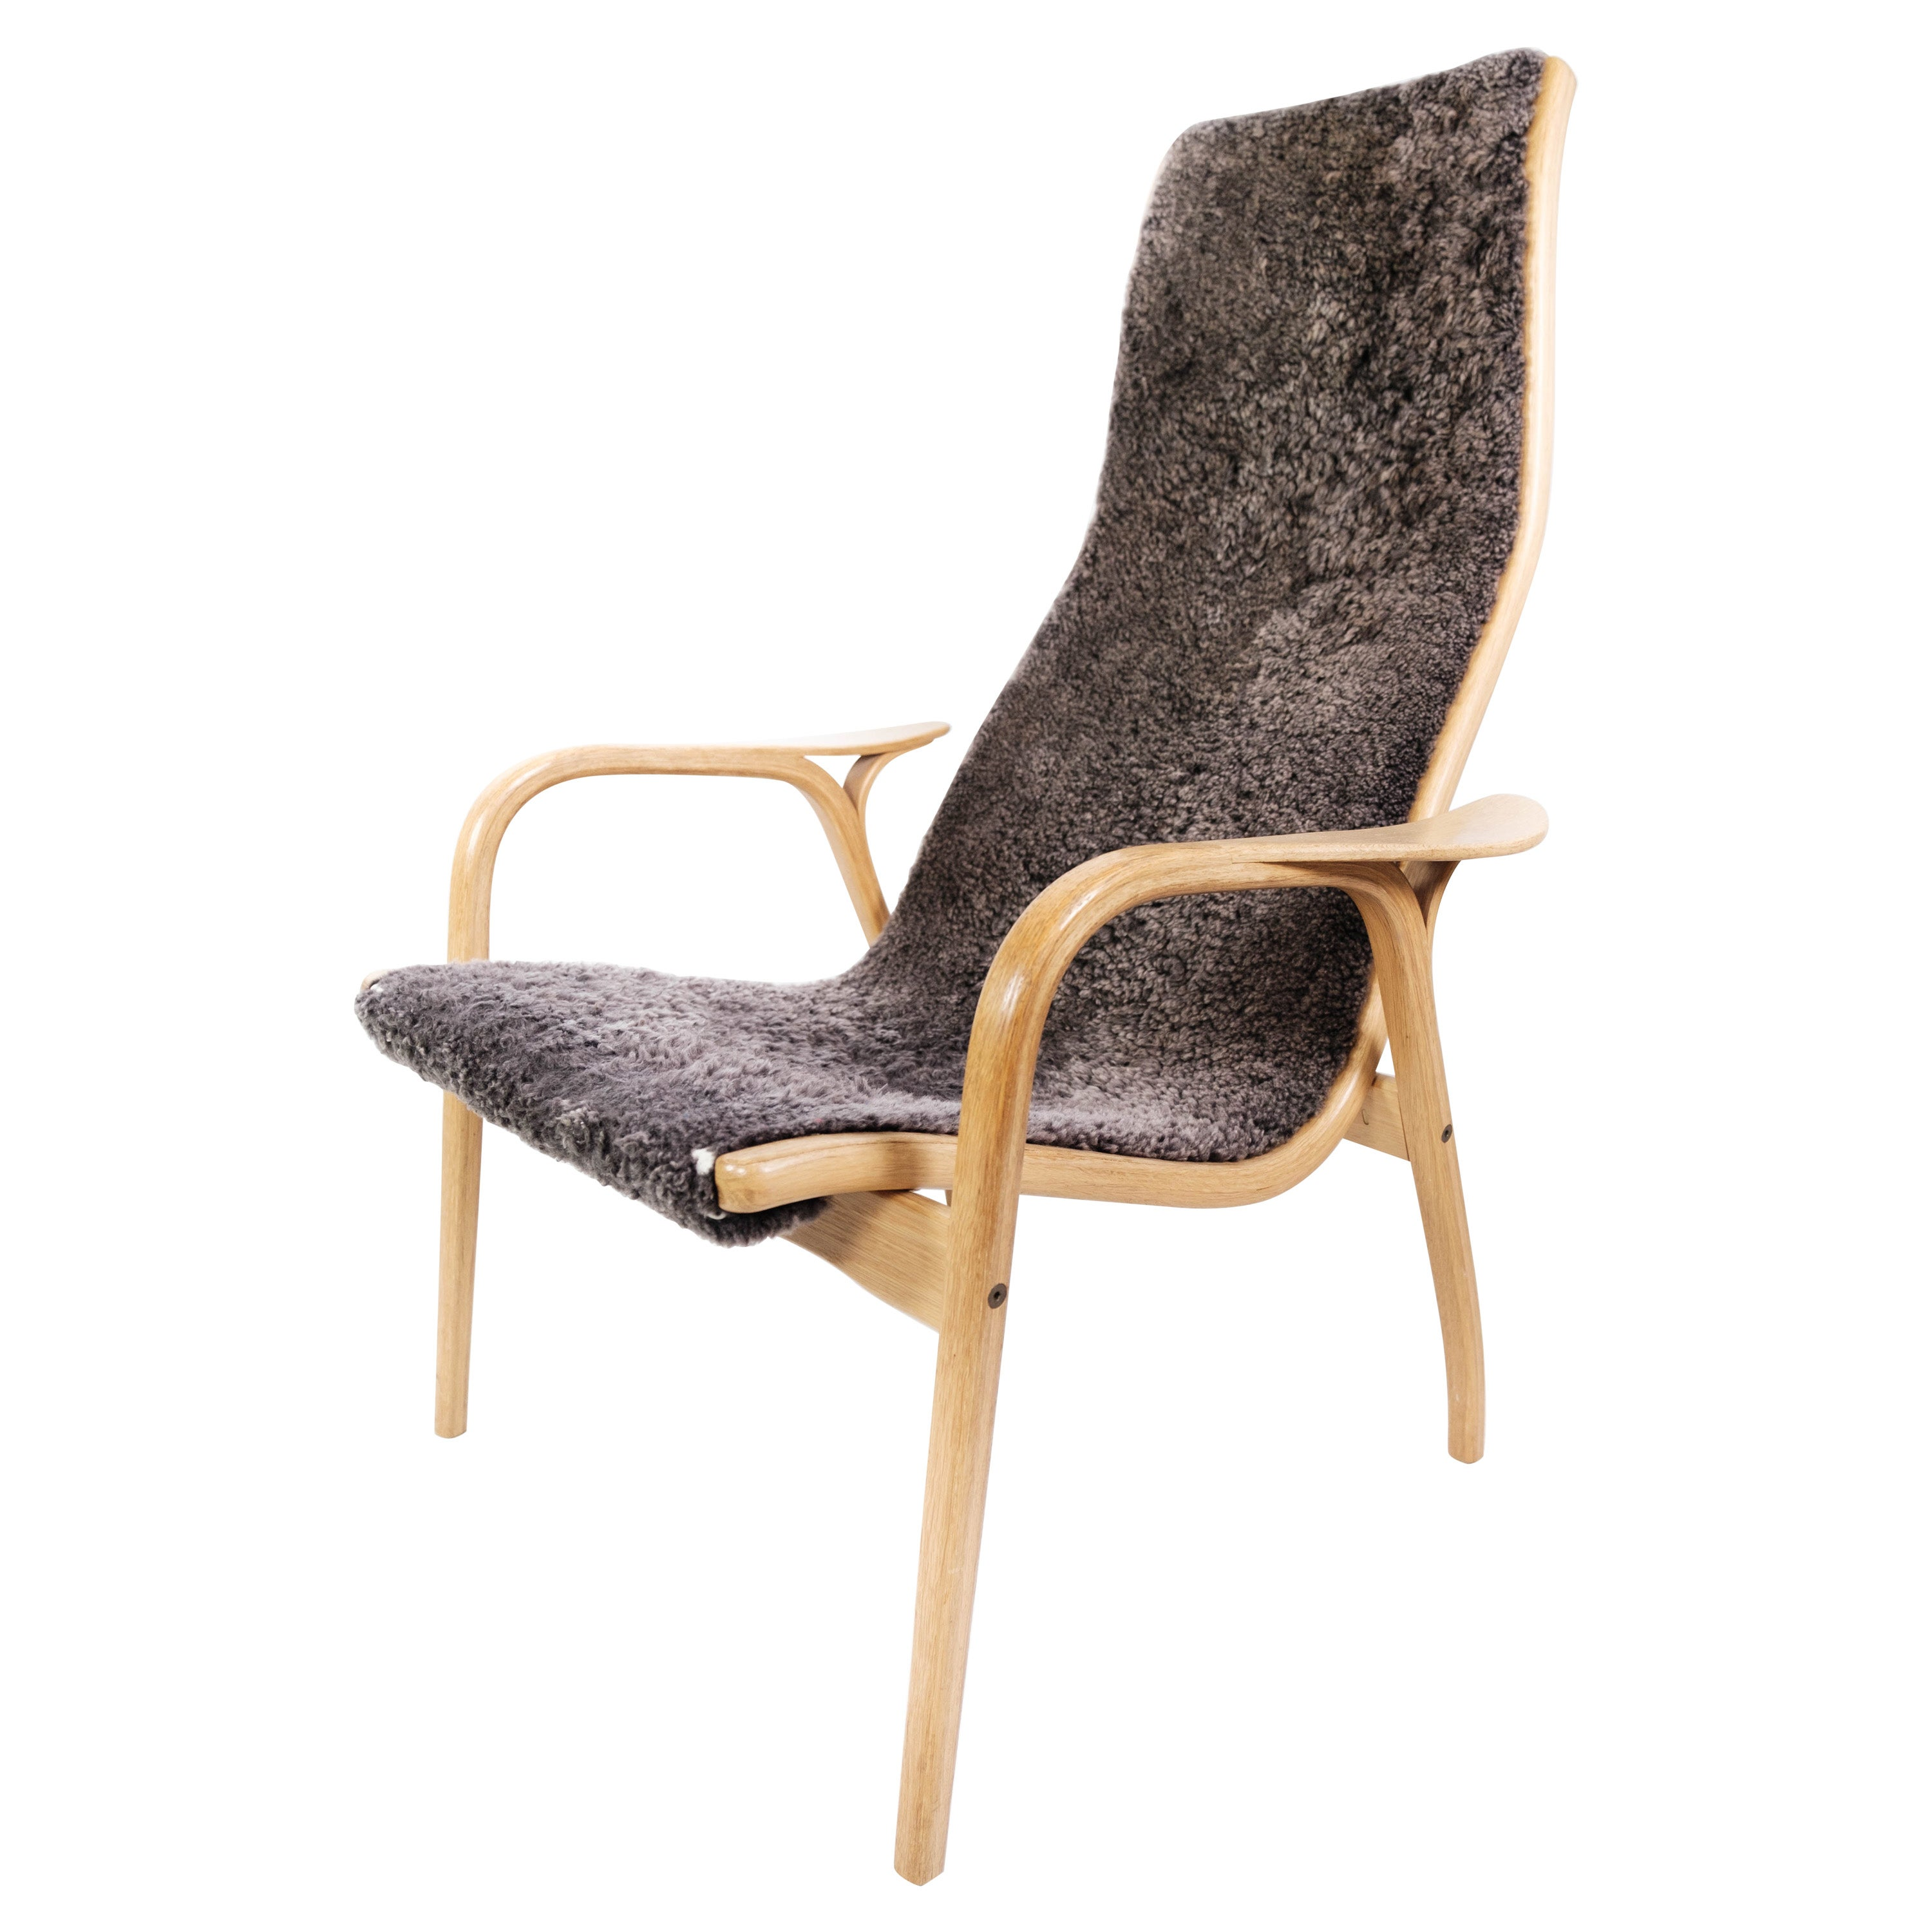 Easy Chair, Model Lamino, by Yngve Ekström and Swedese, 1950s